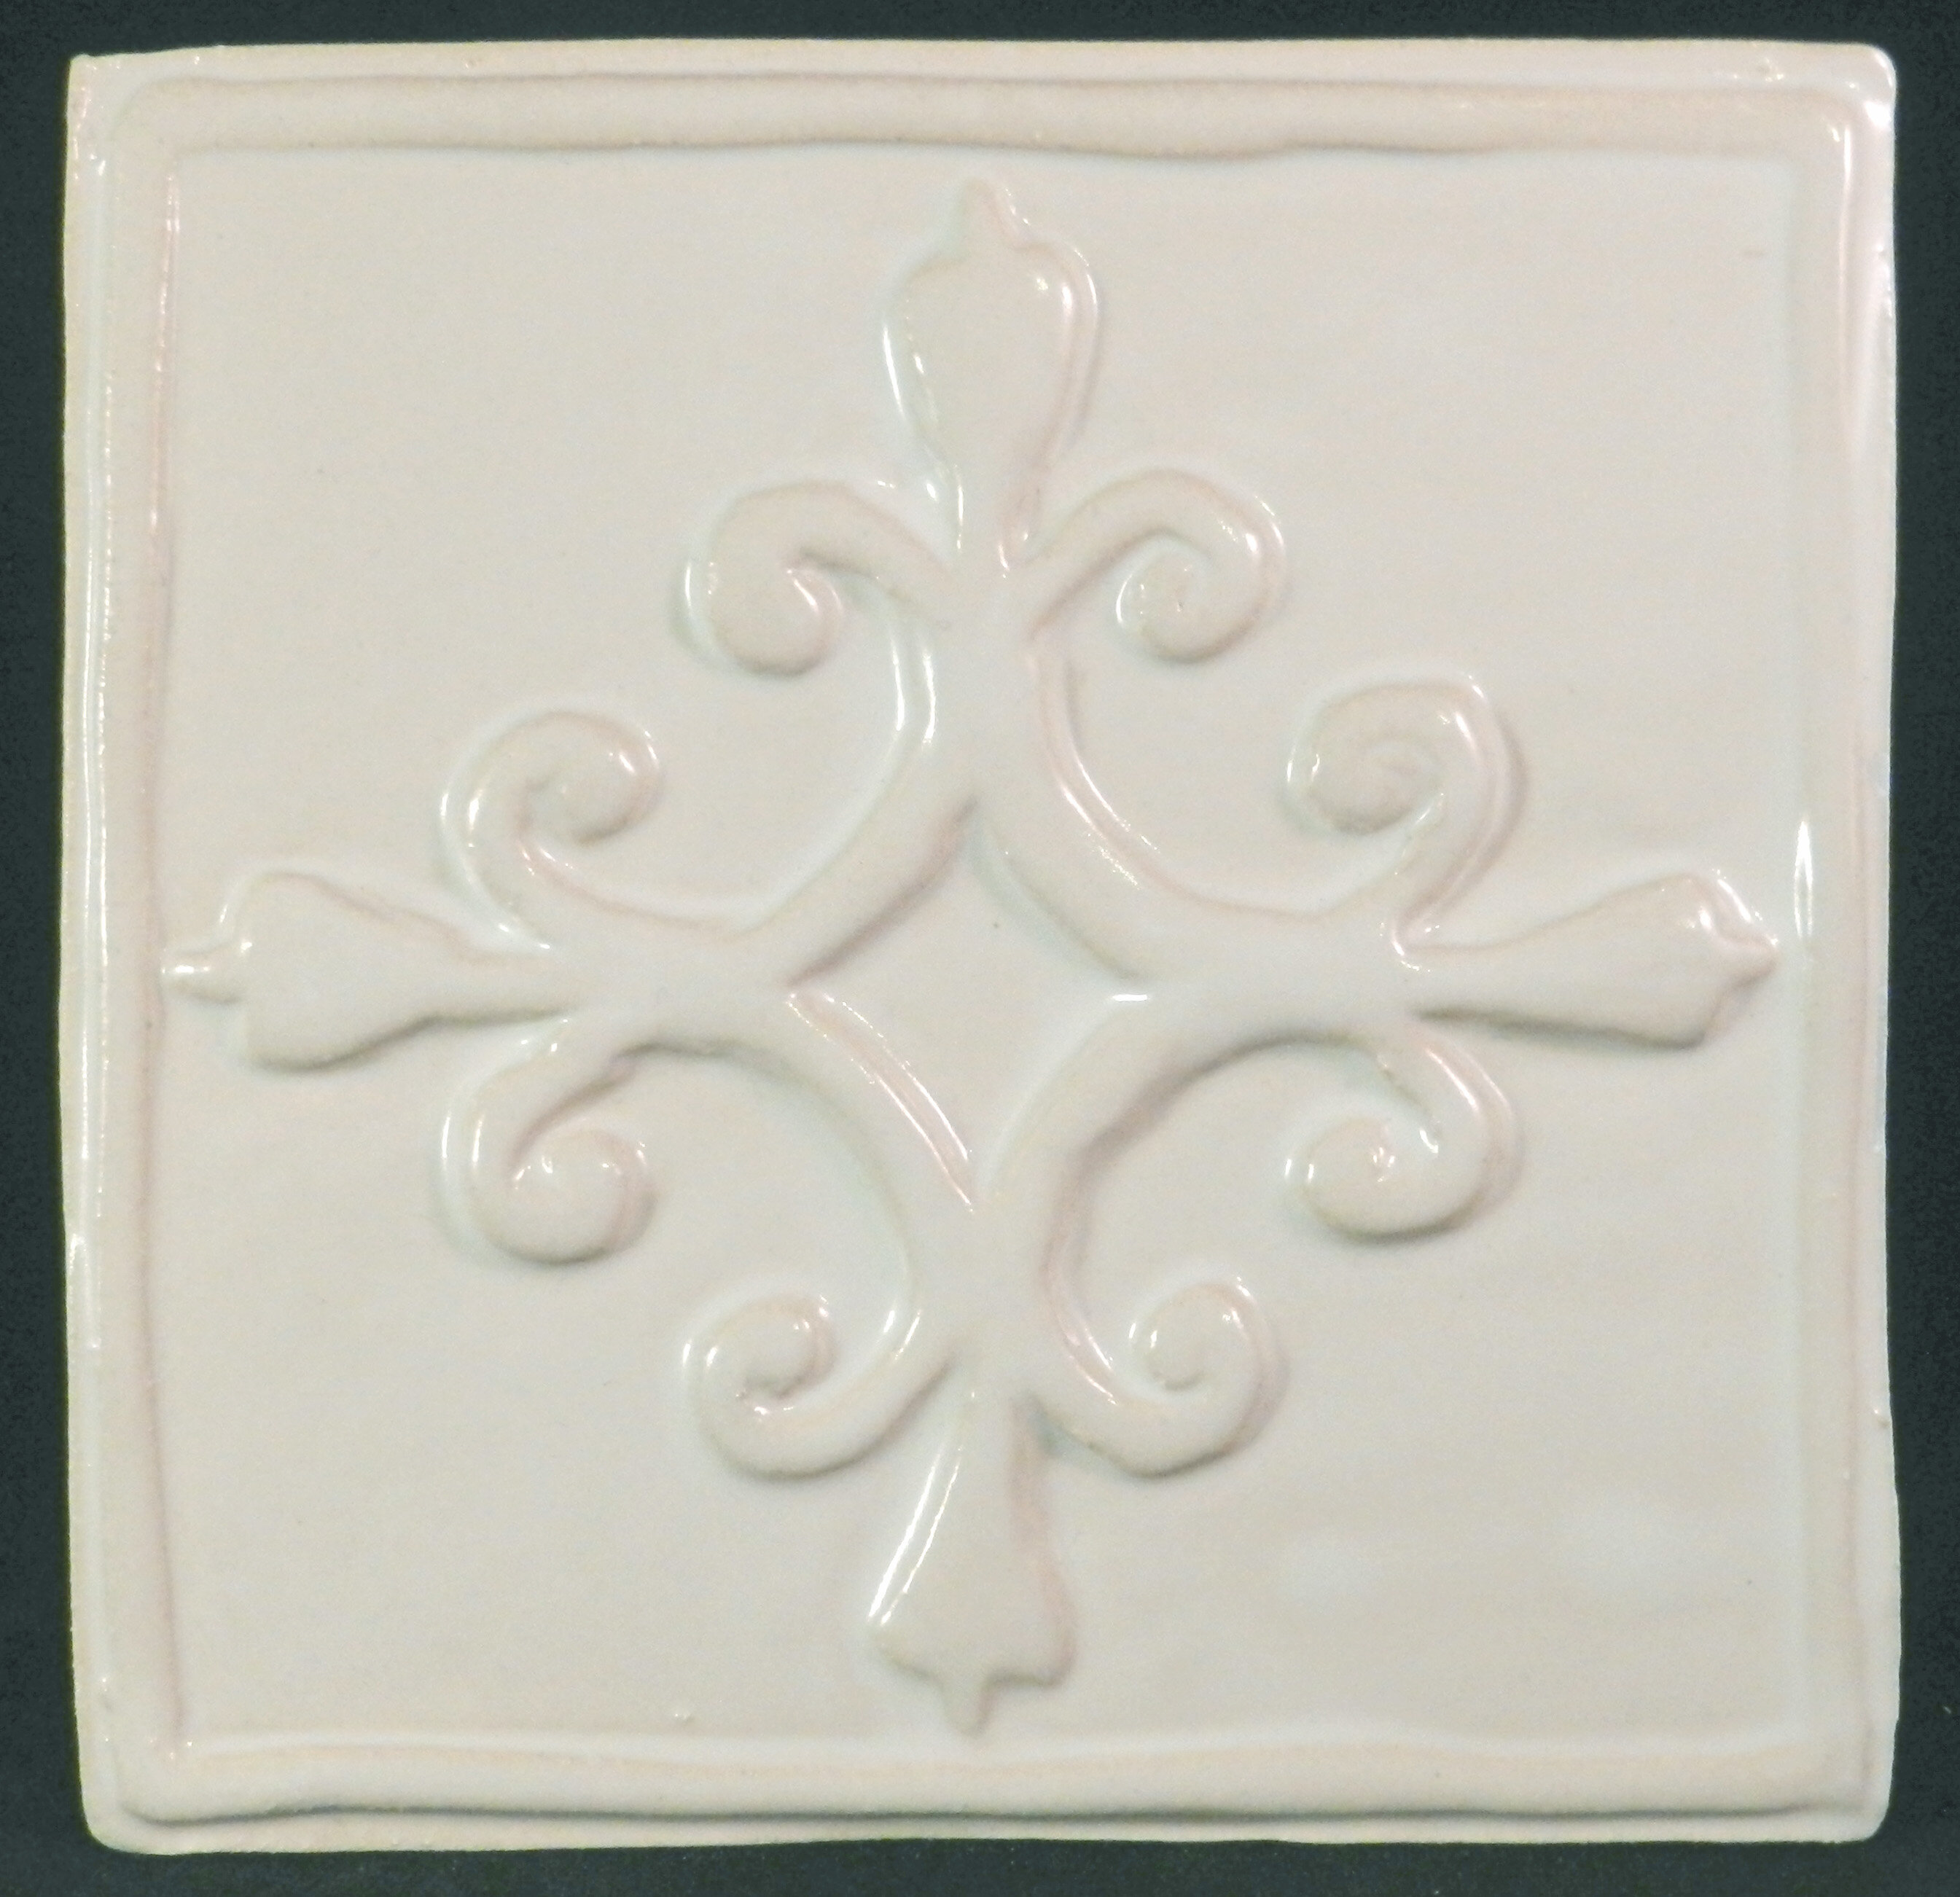 Clay Decor French Quarter 6 X Ceramic Decorative Accent Tile In White Reviews Wayfair